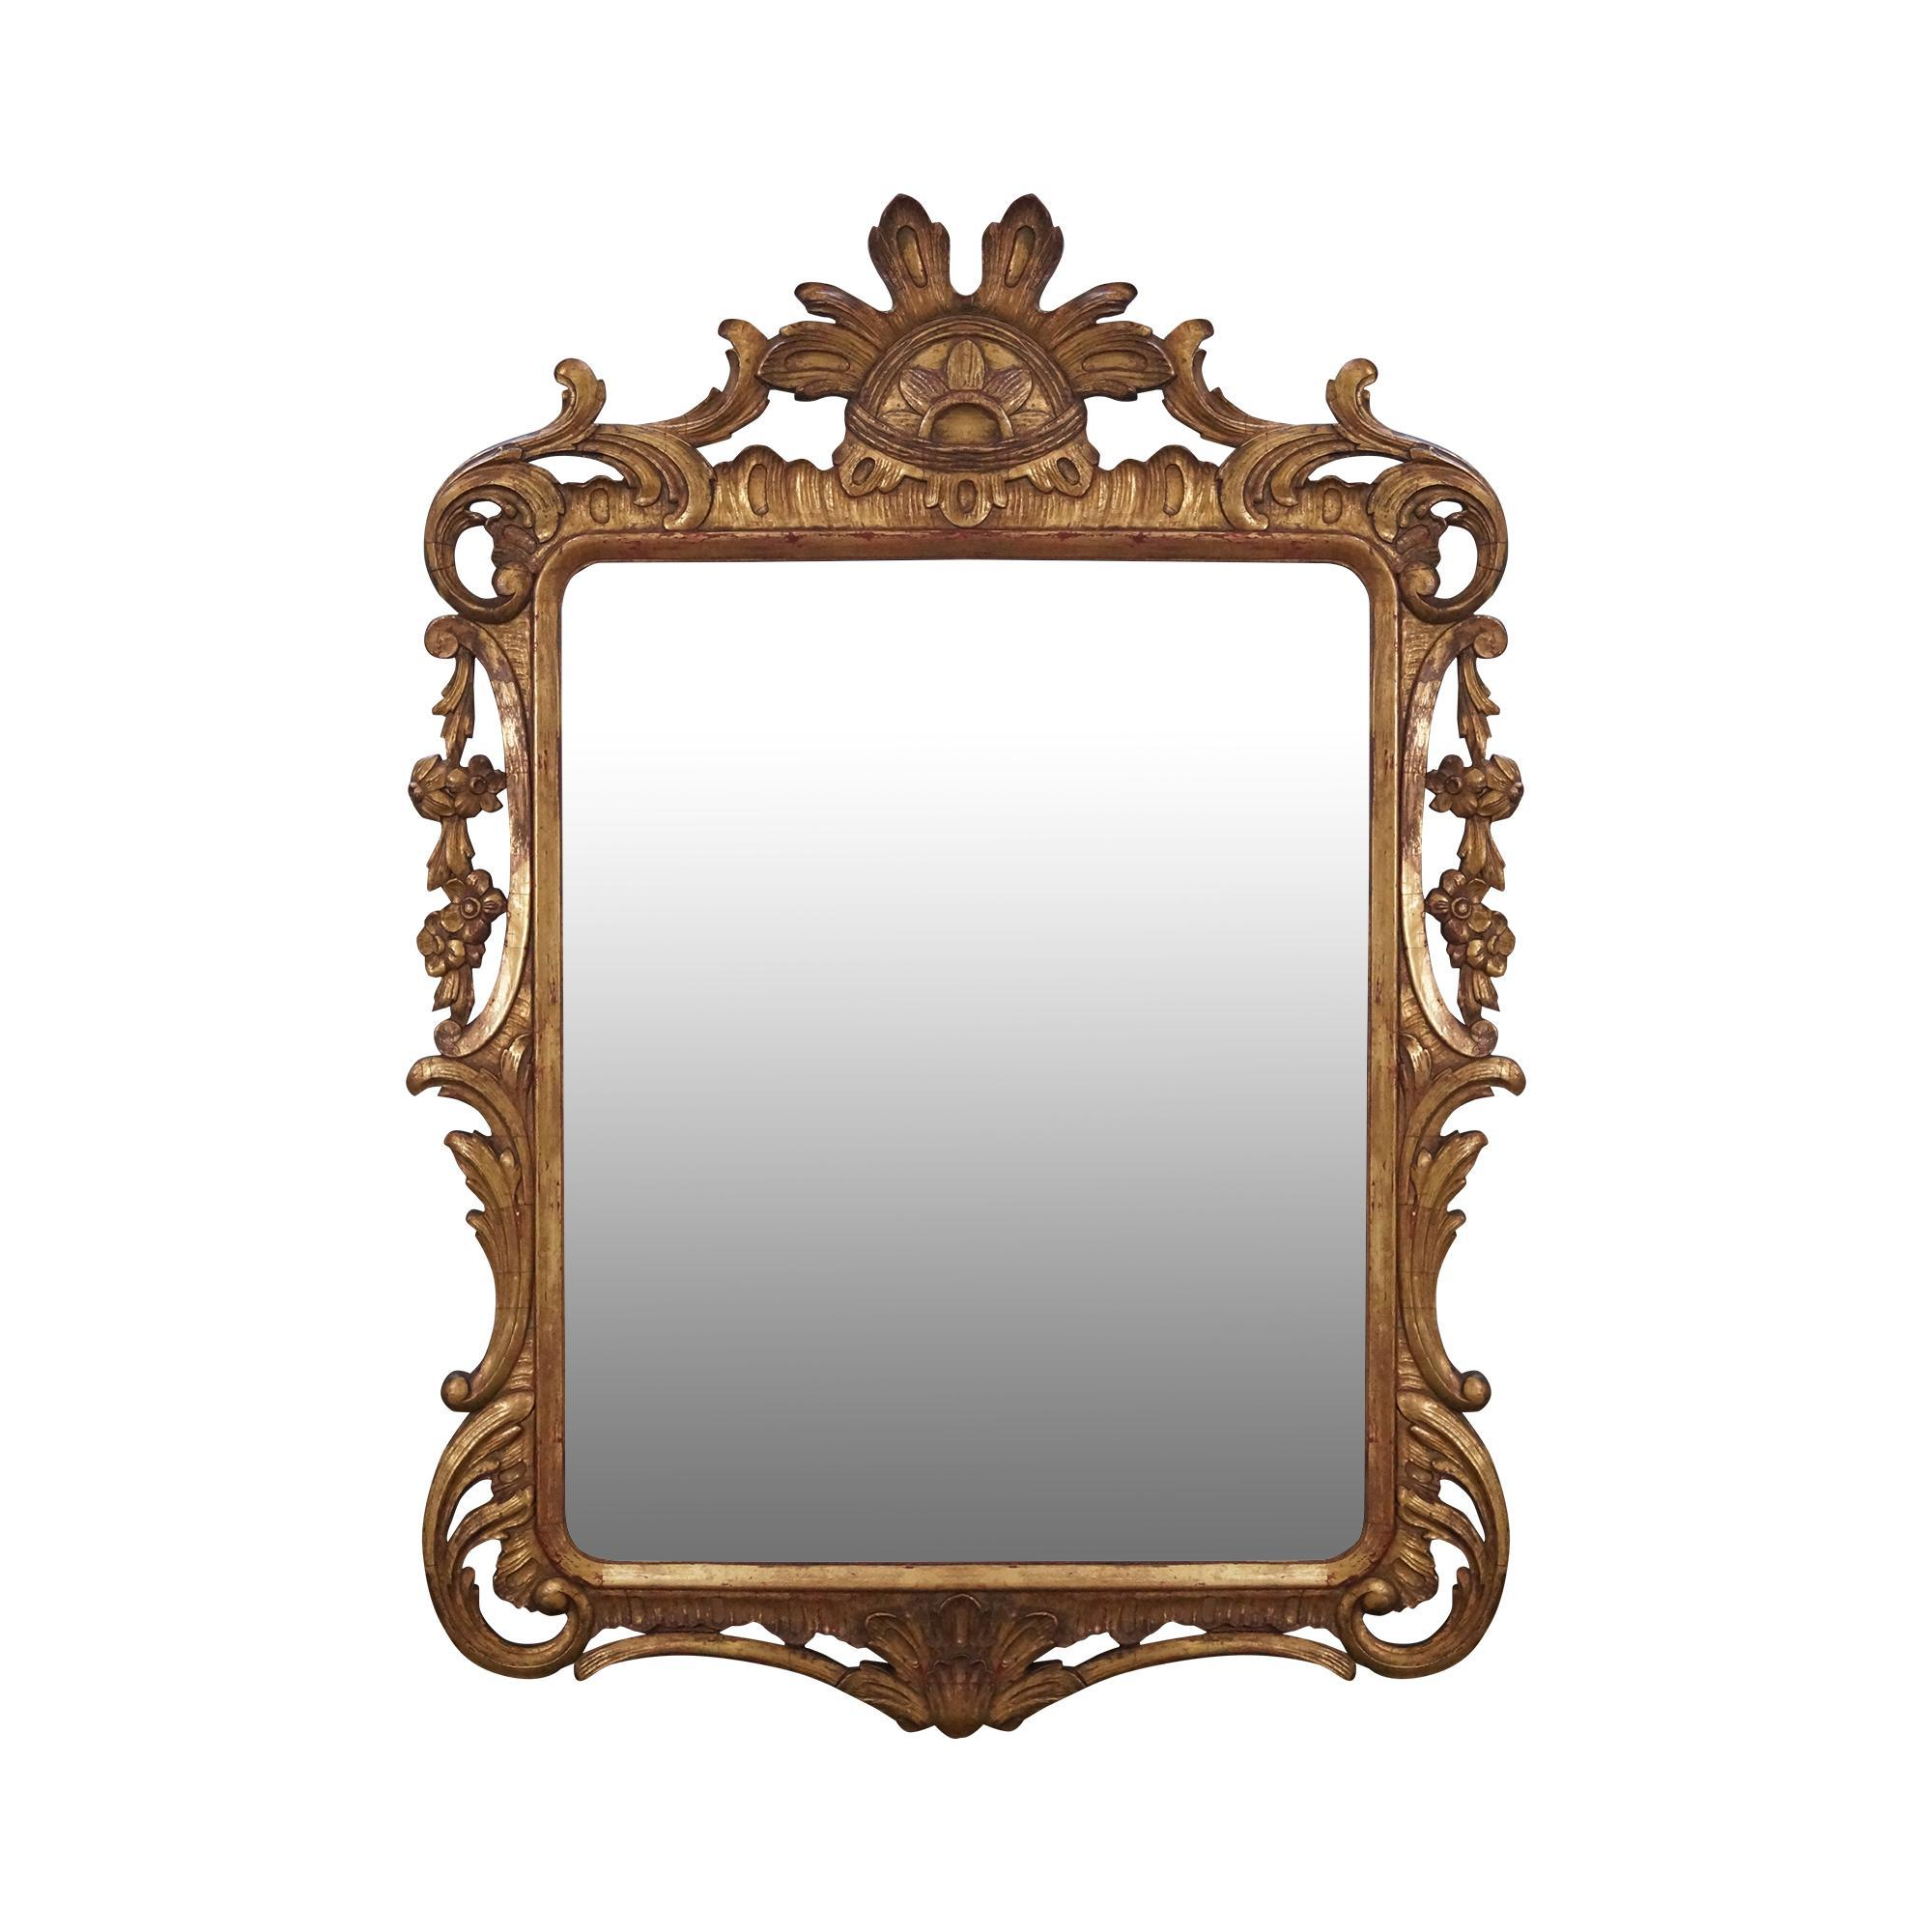 Vintage french louis xv style gold gilt carved wood frame for Mirror frame styles